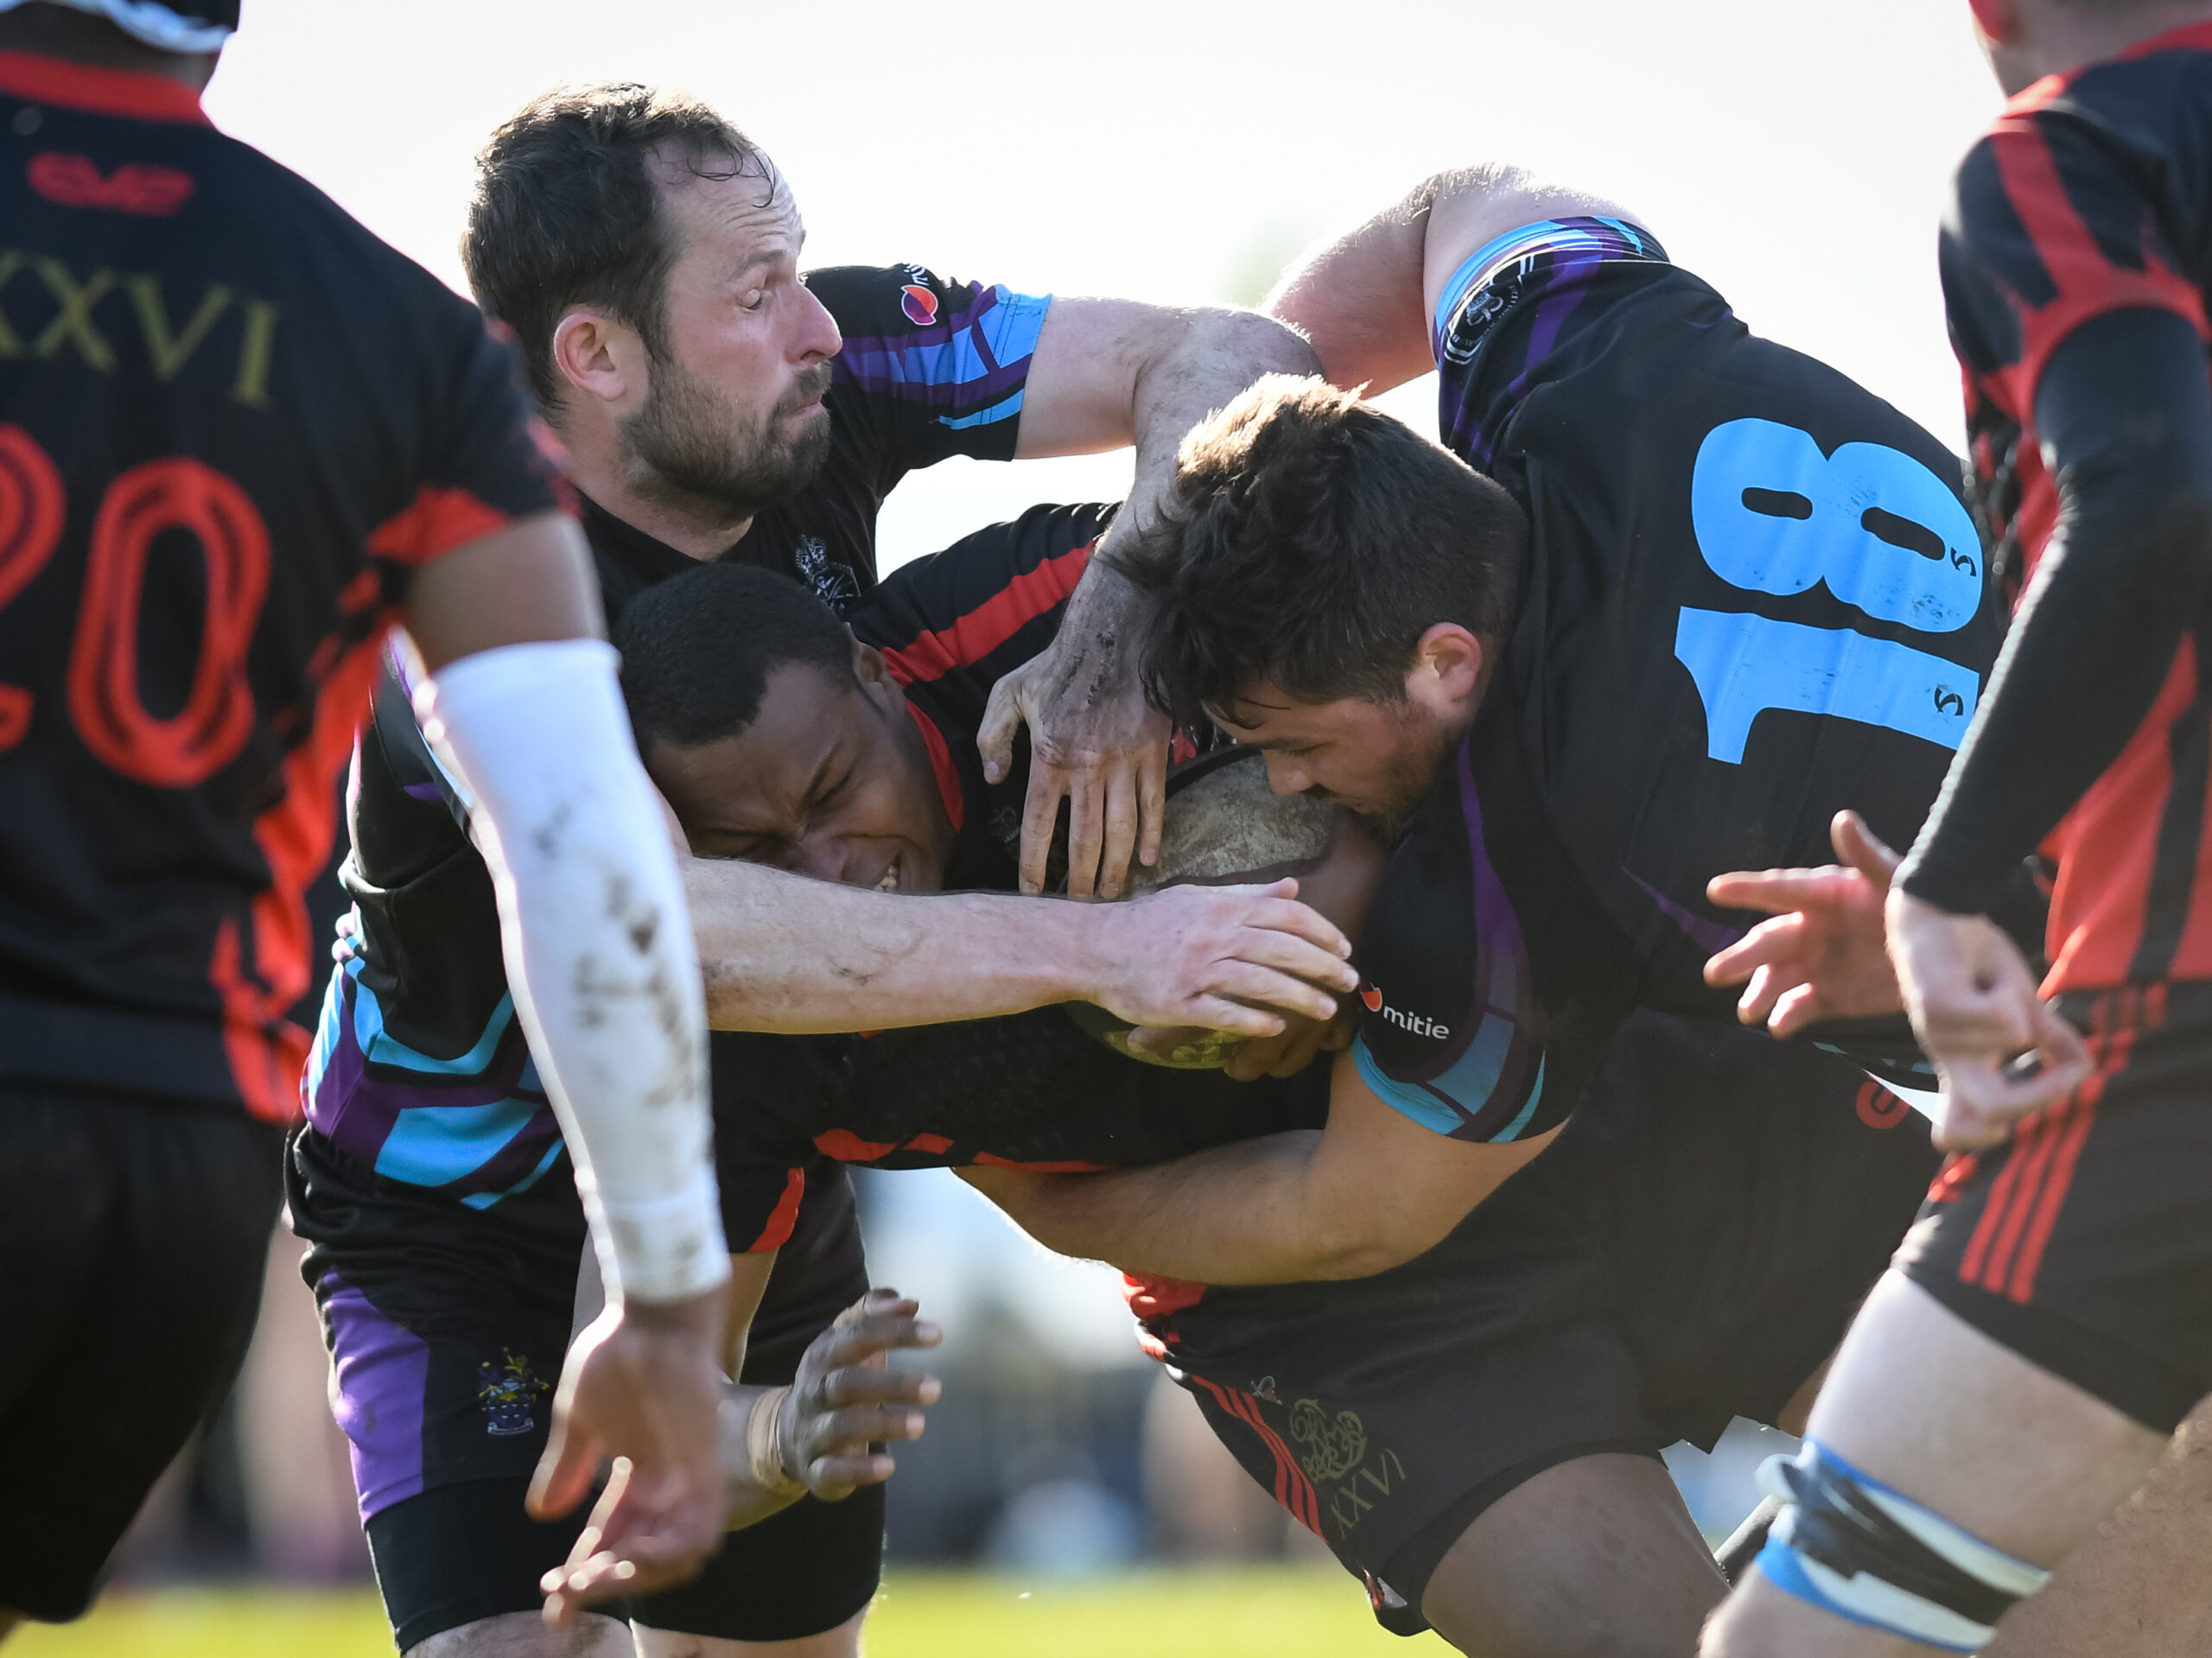 Unit Rugby is Back – Abbey Wood v 26 Regt RA